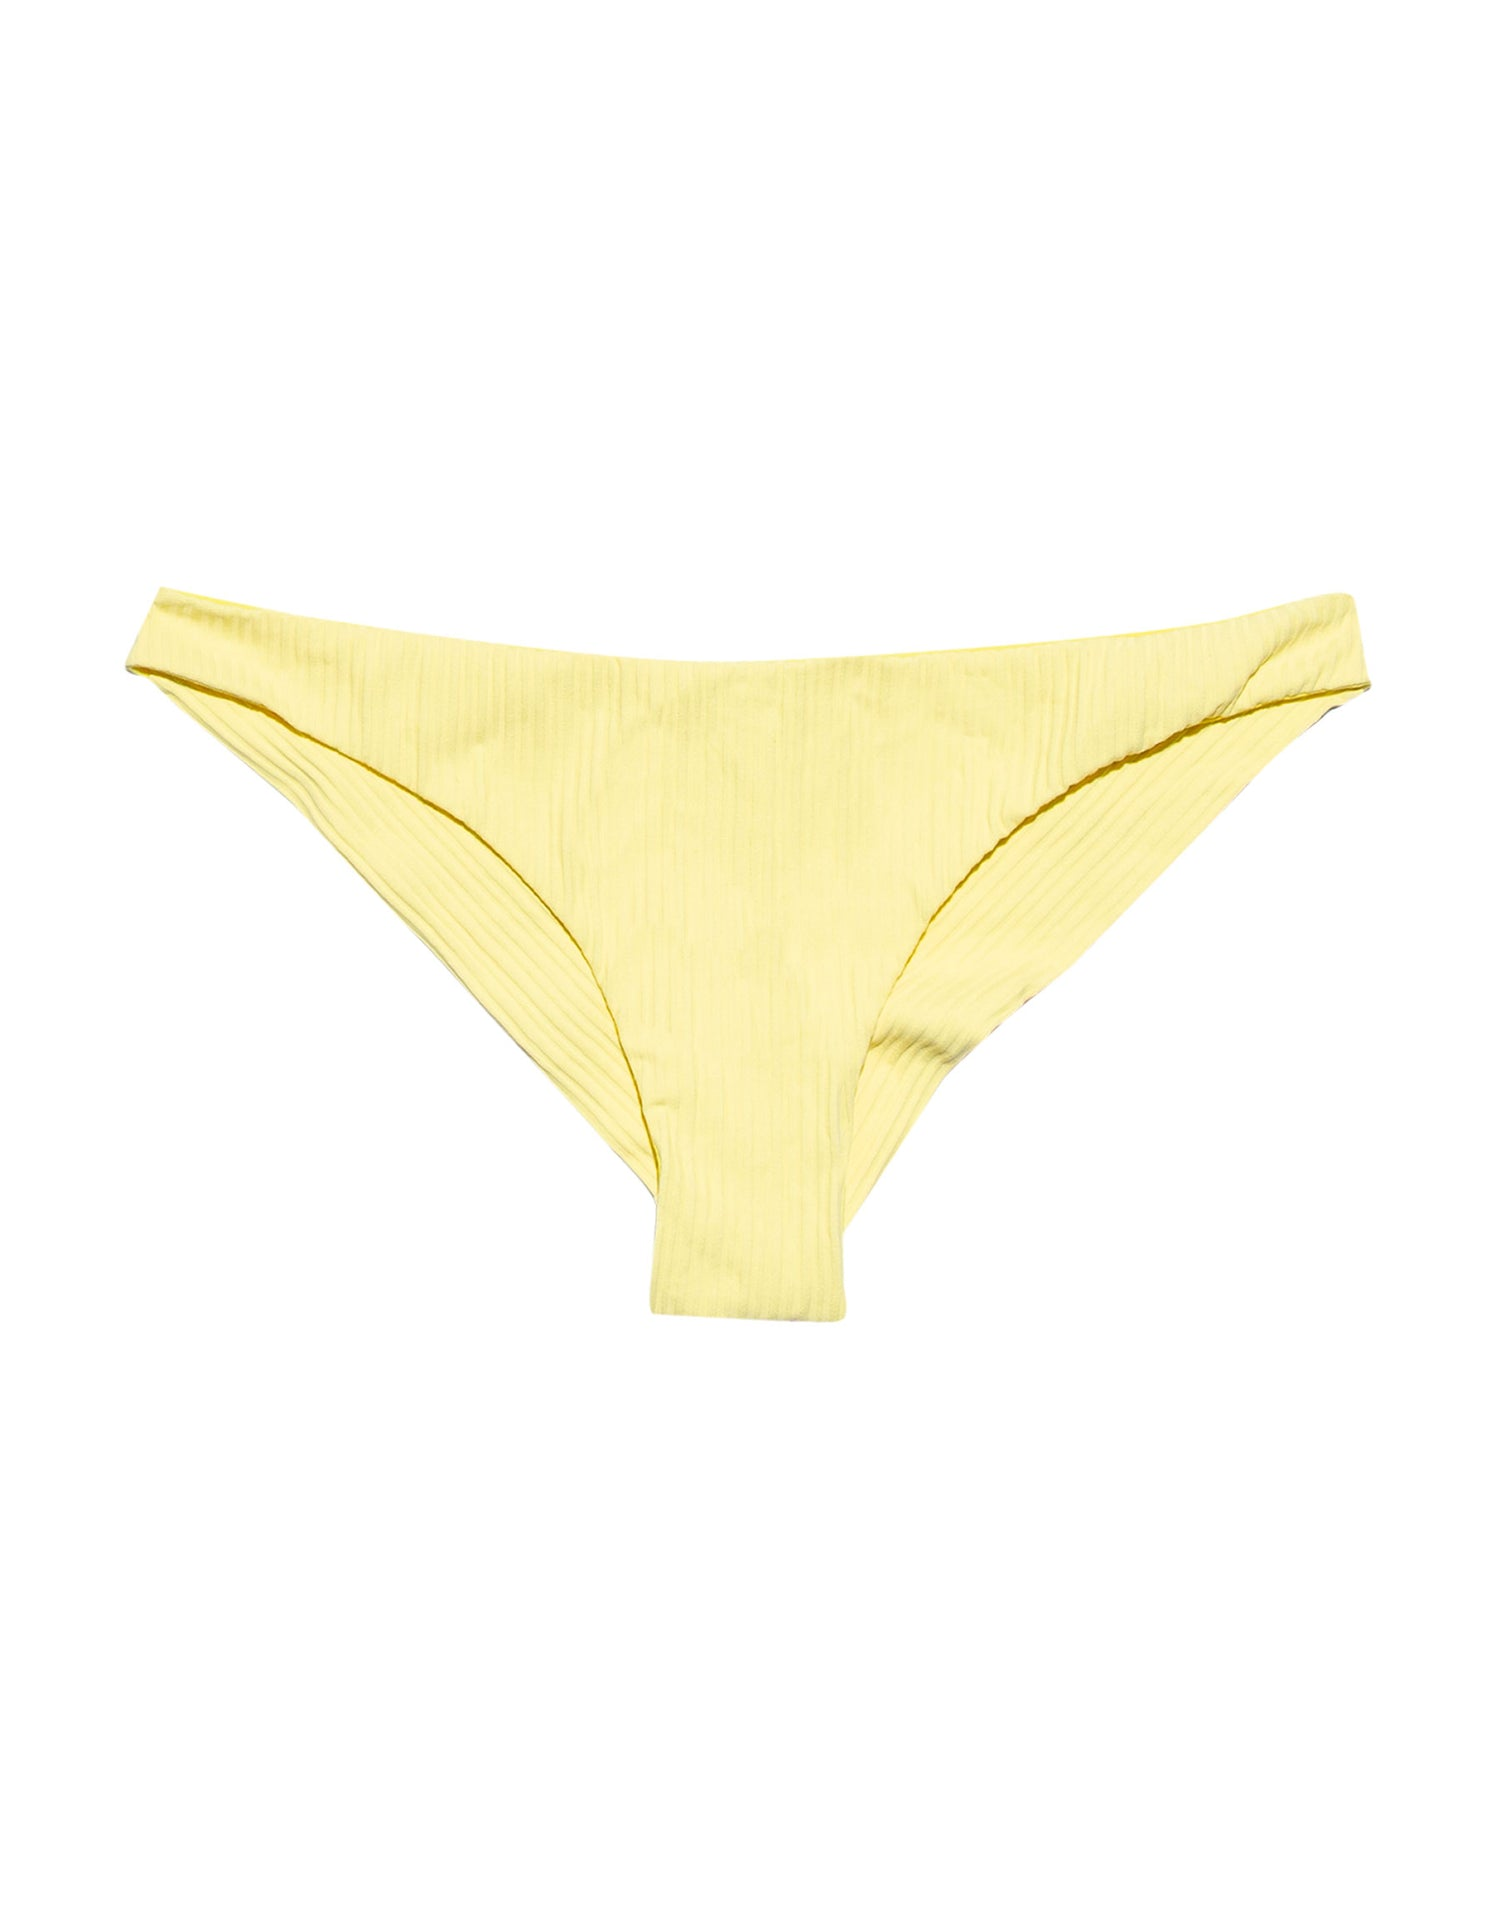 Yellow Rib Skimpy Swim Bottom - product view